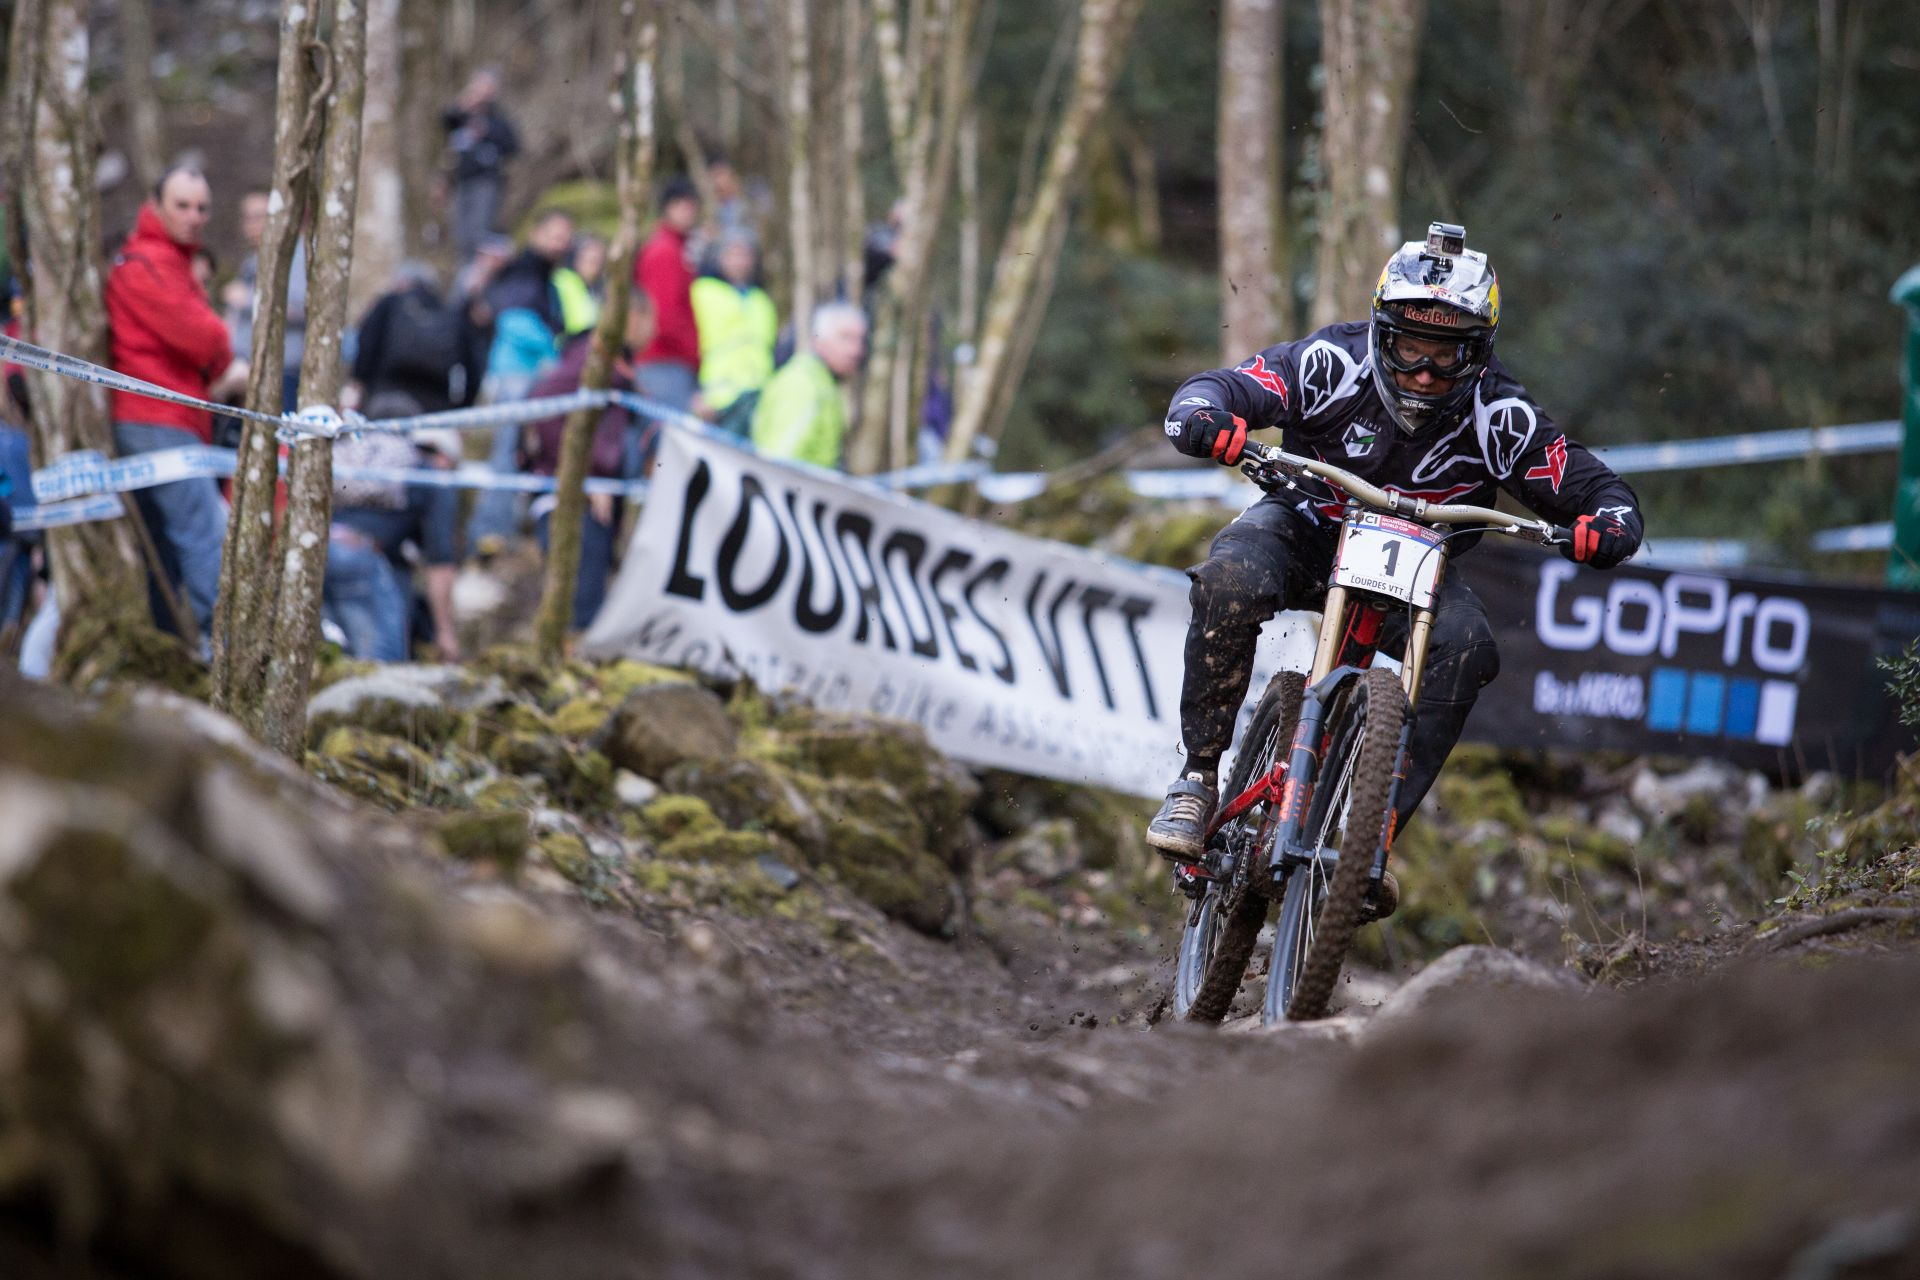 Aaron Gwin racing downhill in Lourdes